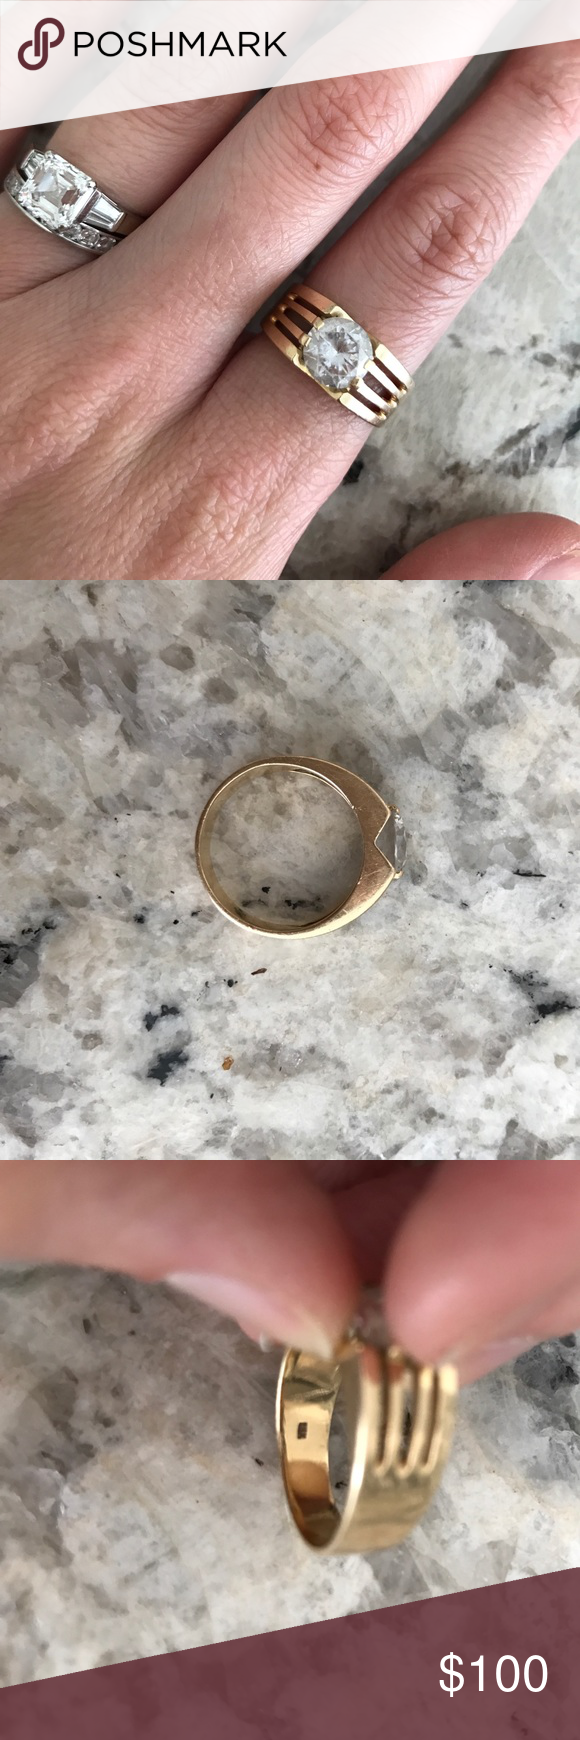 18k solid yellow gold cubic zirconia ring Cool vintage design.  Stamped 18k.  Just tested with a magnet to confirm it's solid! Vintage Jewelry Rings